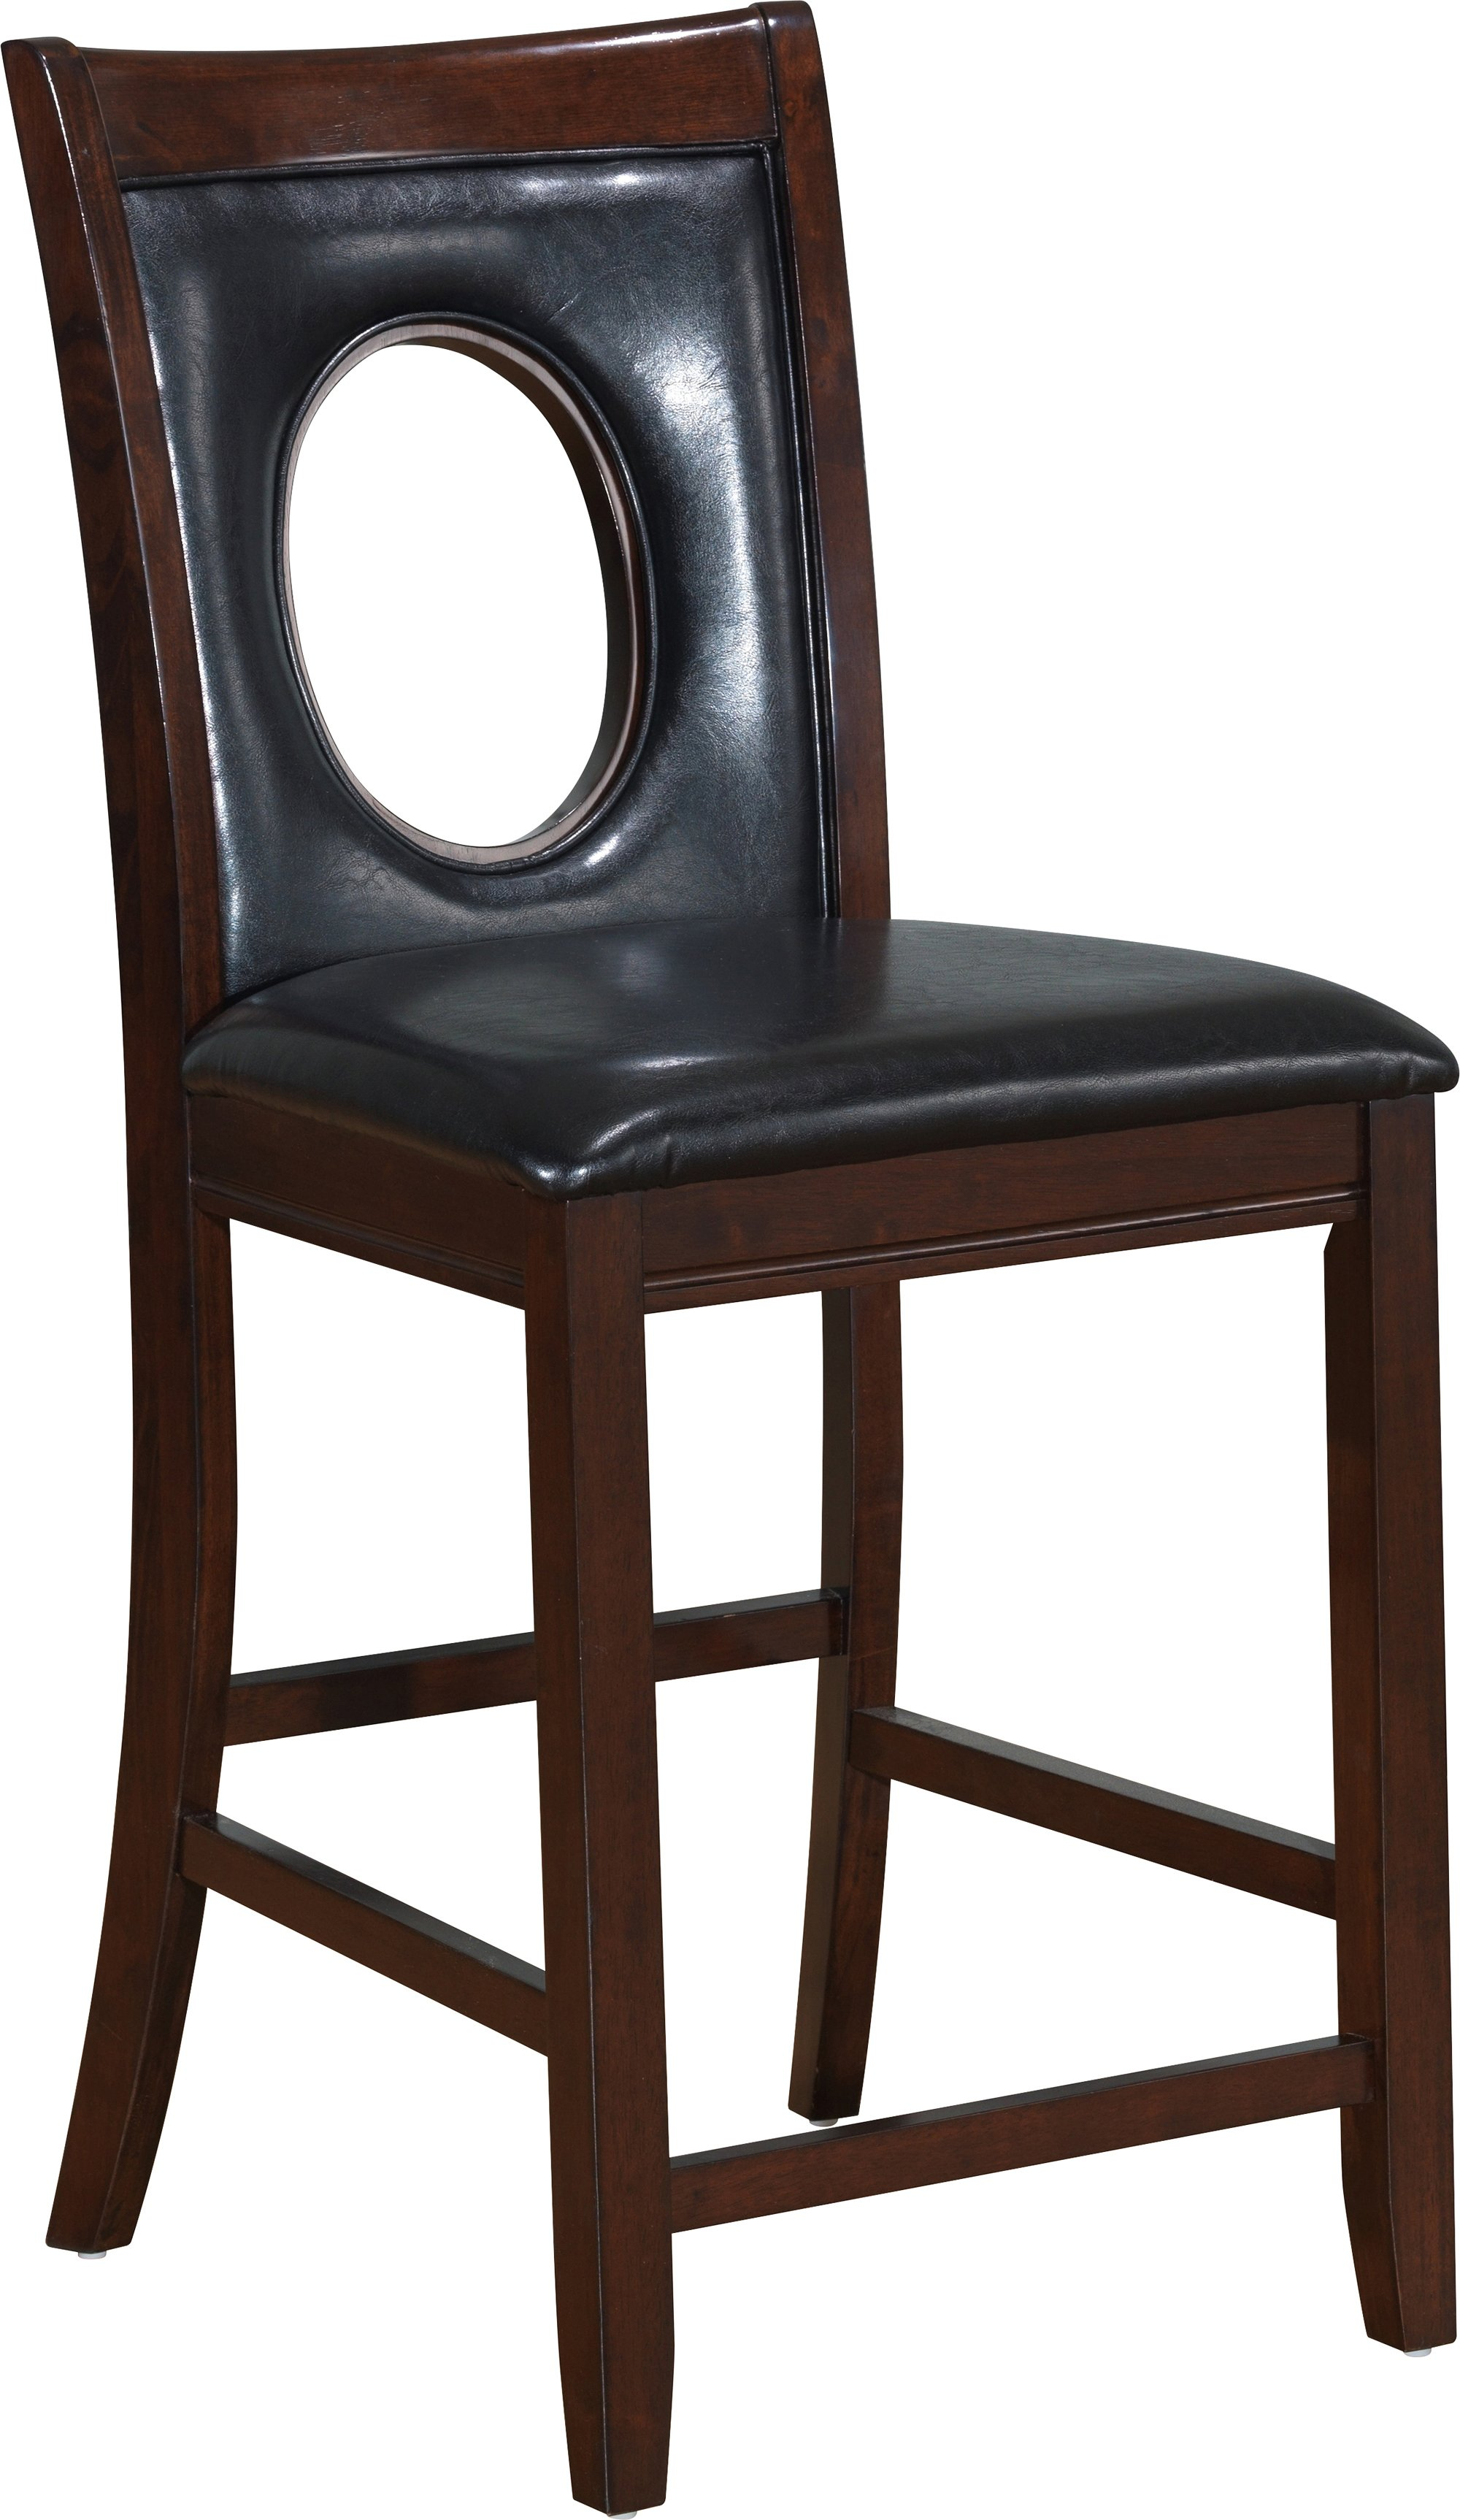 Bar Stool D1007 Cappuccino Set Of 2 By Global Furniture